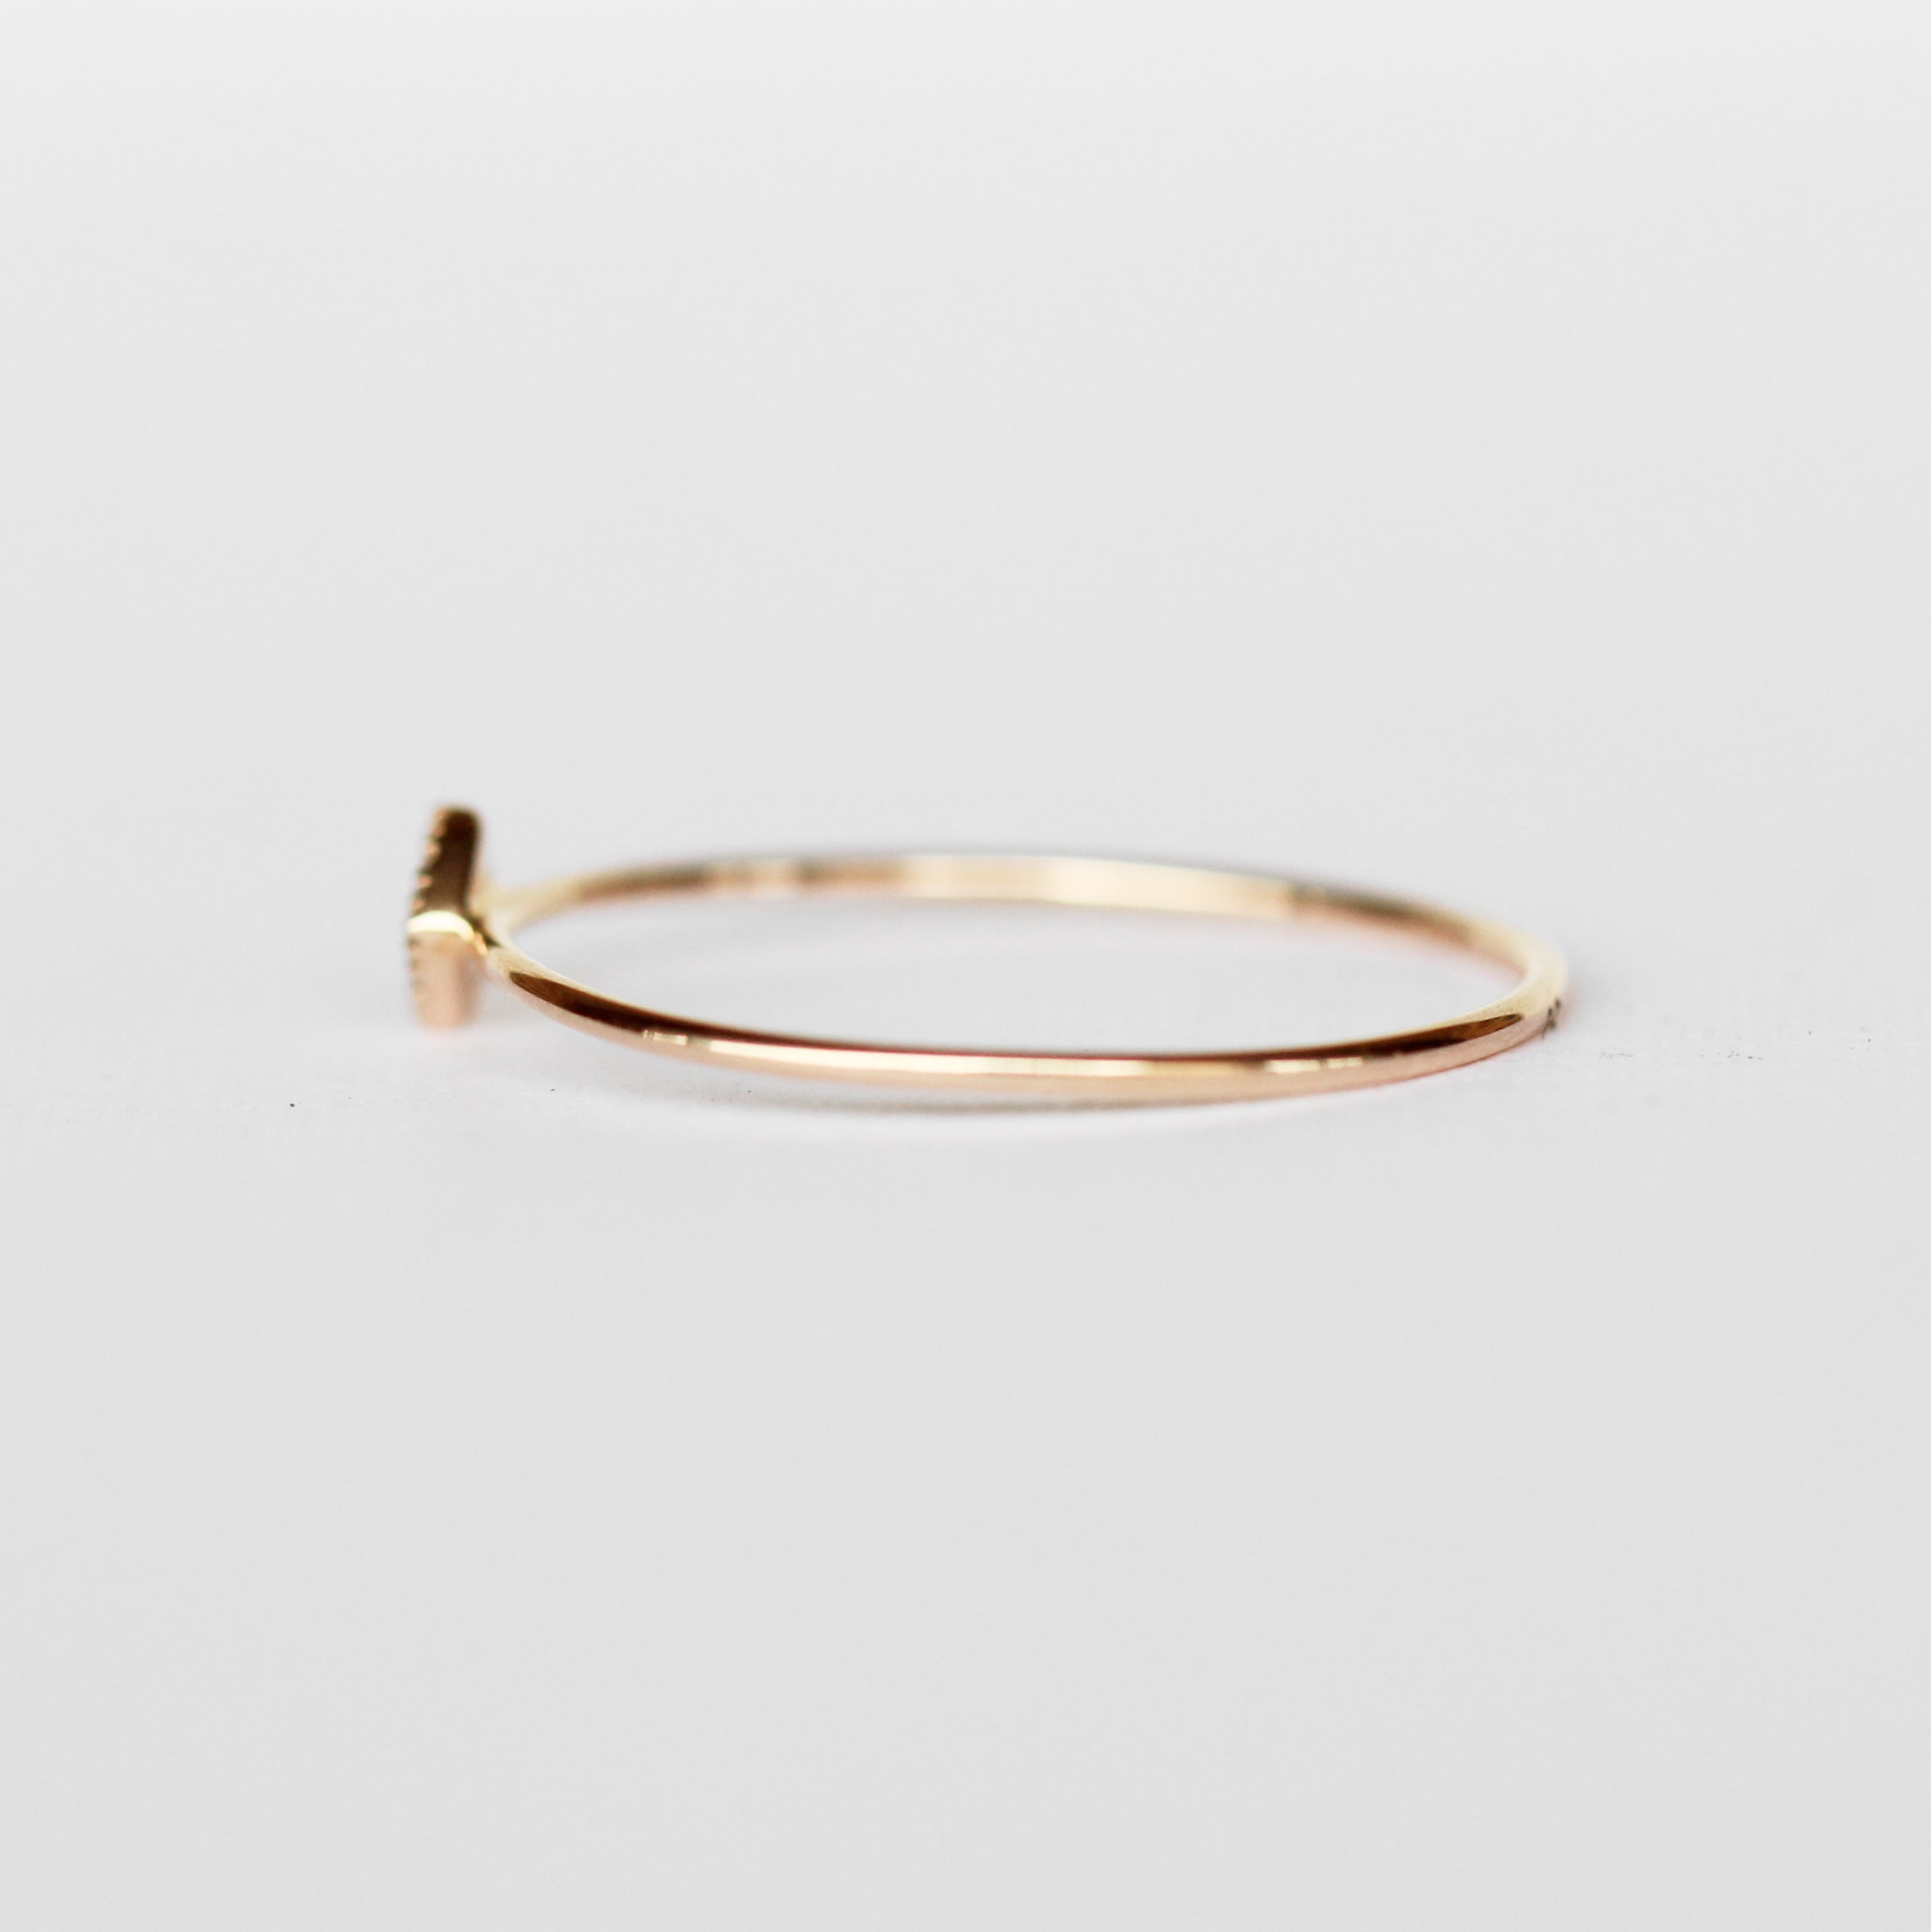 Bloom Minimal Ring - Diamond Band Stackable Ring in Gold - Celestial Diamonds ® by Midwinter Co.